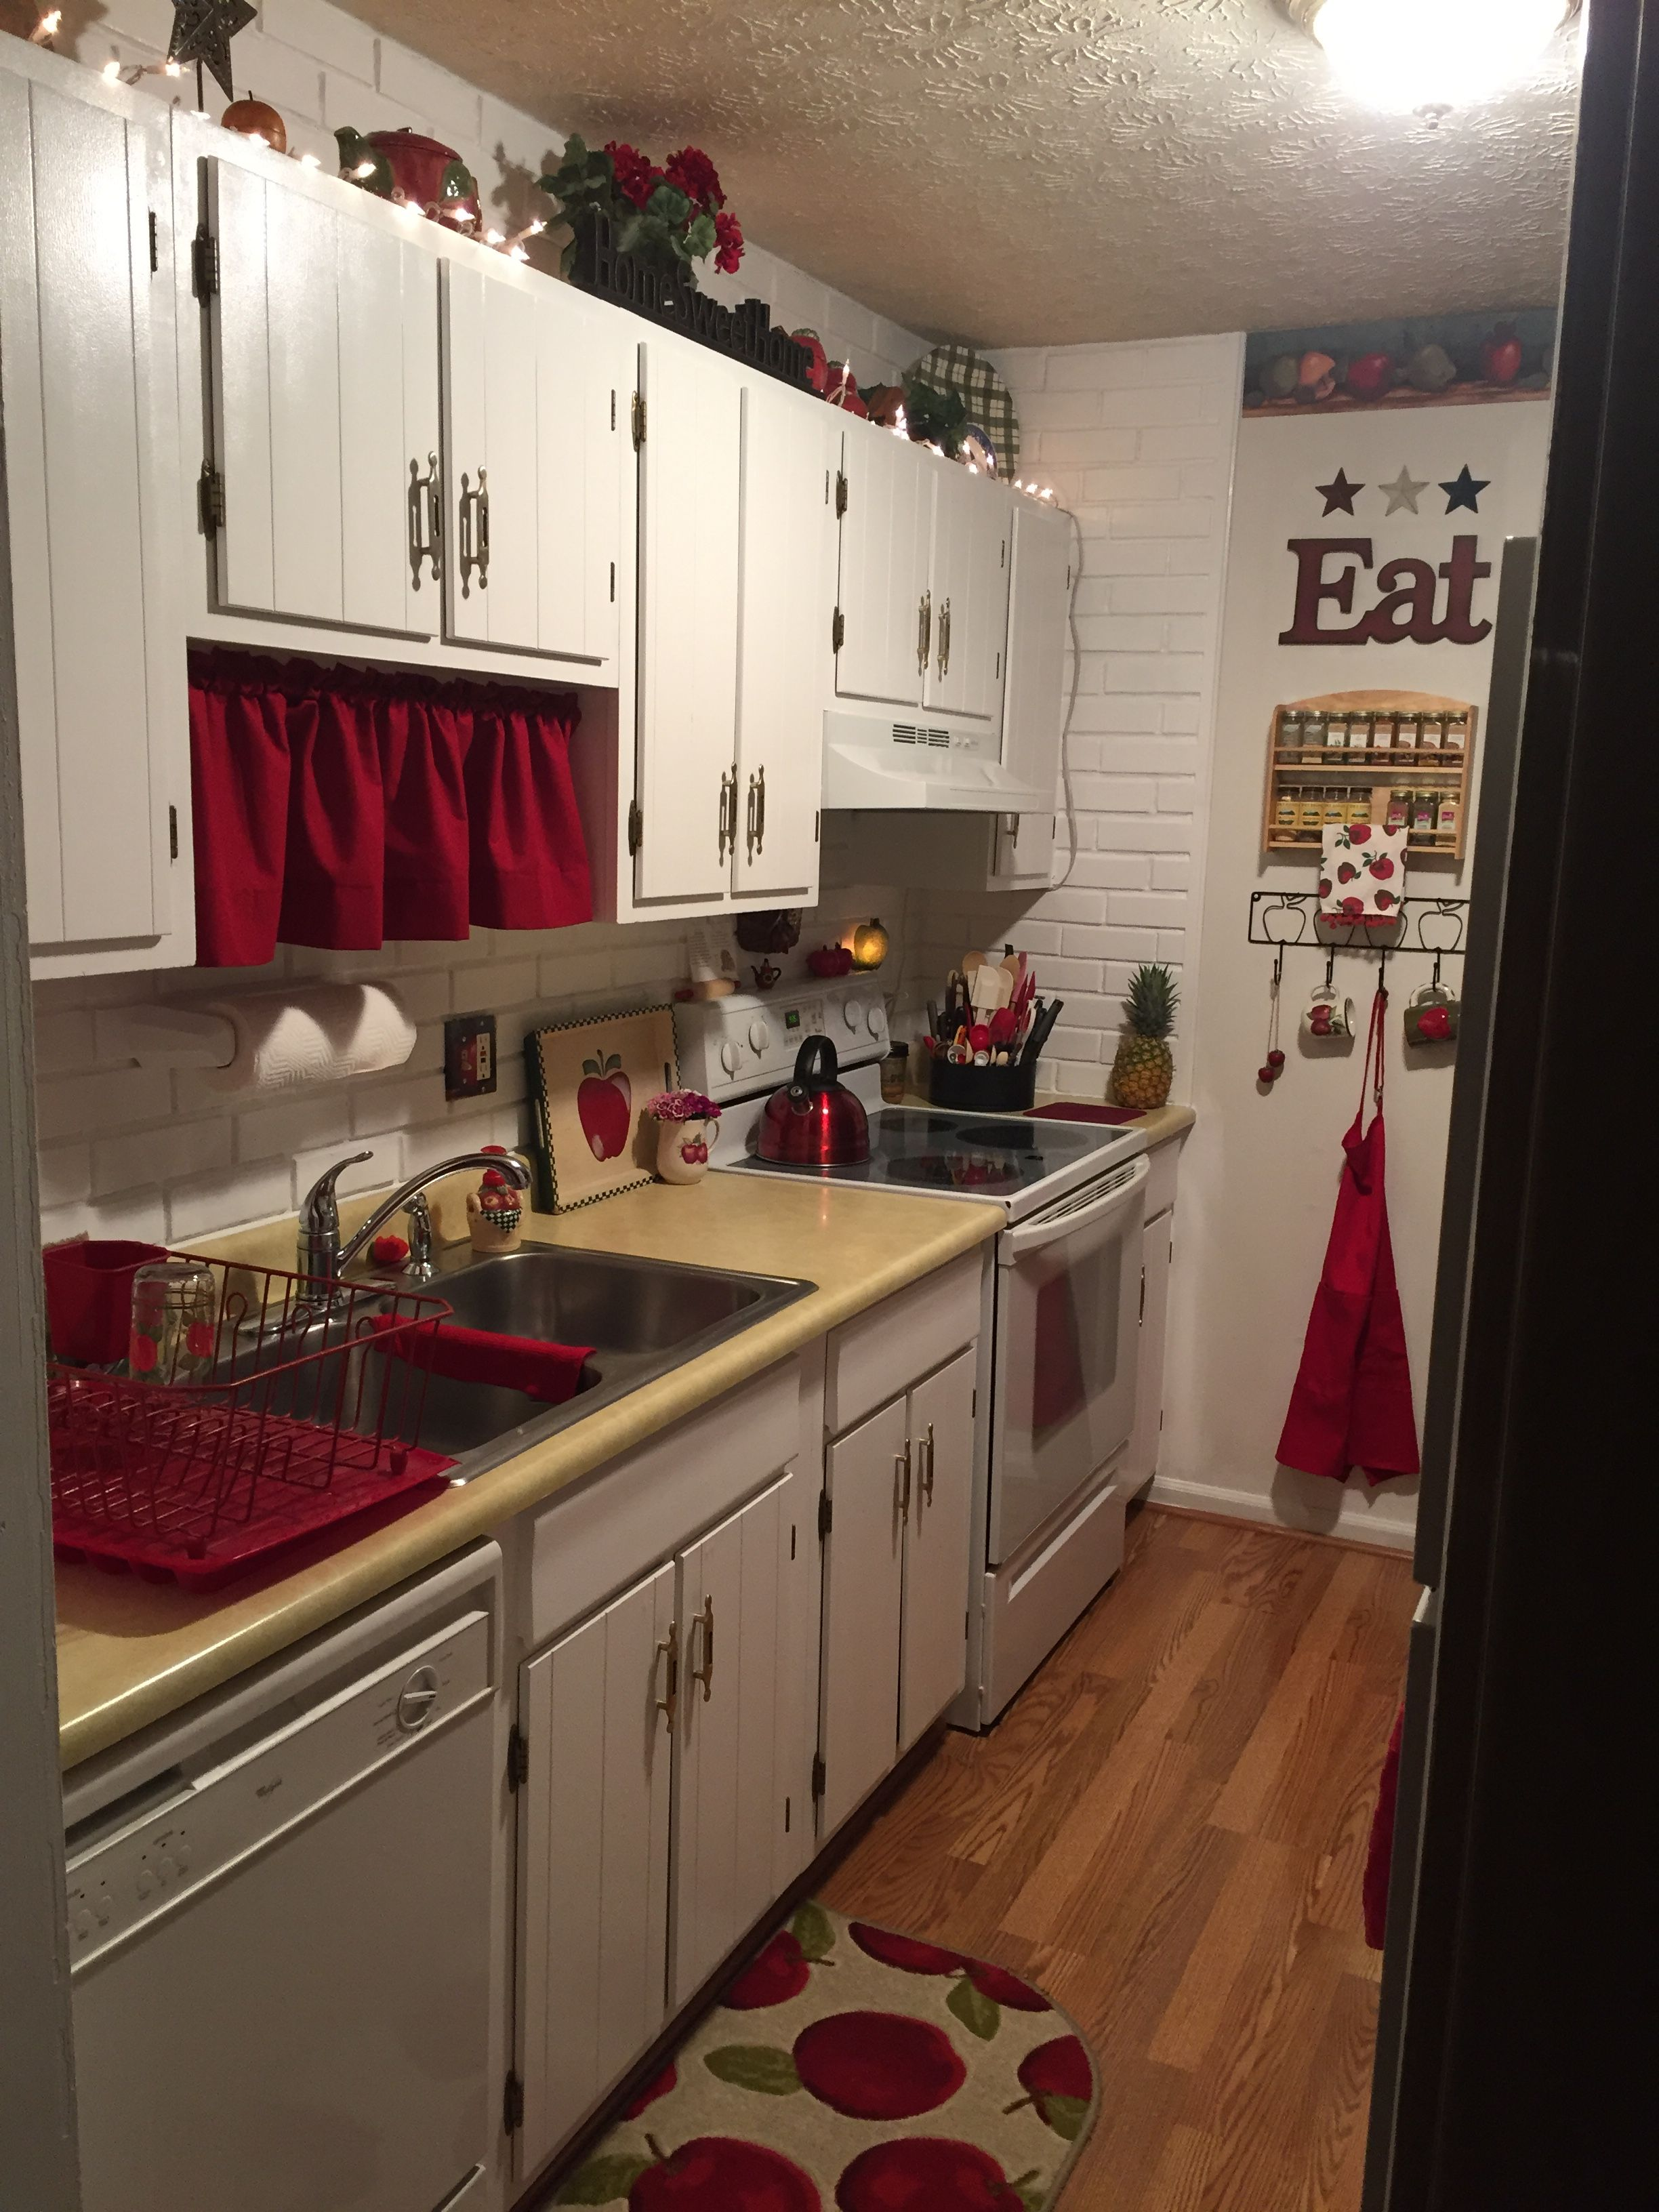 Pin by Wendy Dean on Kitchen | White appliances, Red ...